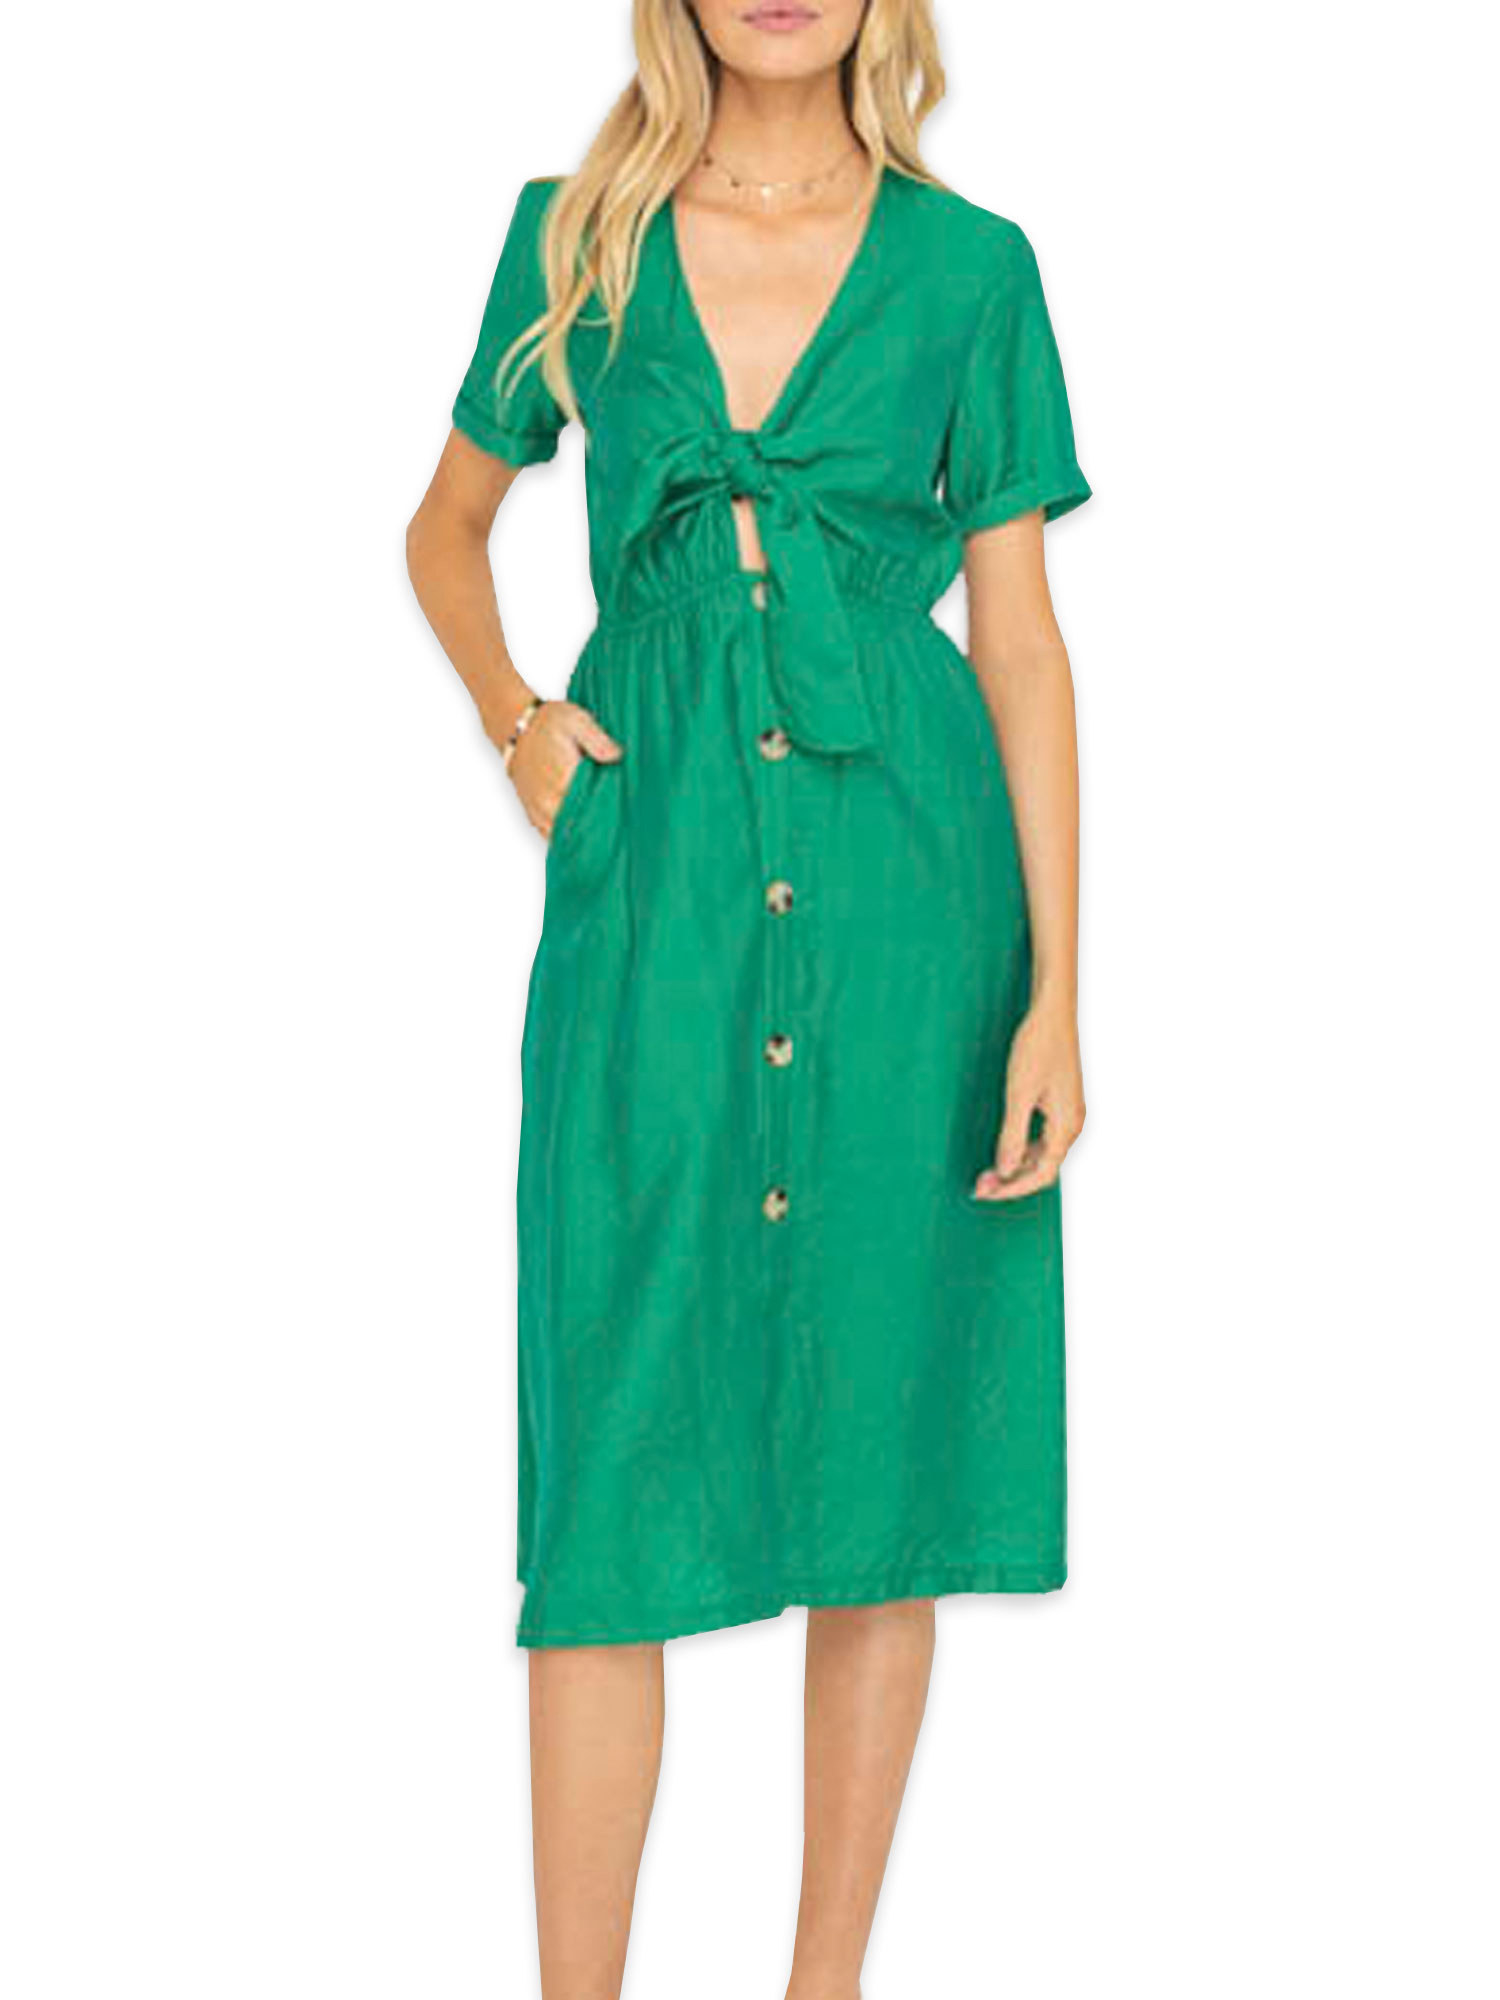 Model wearing the green dress